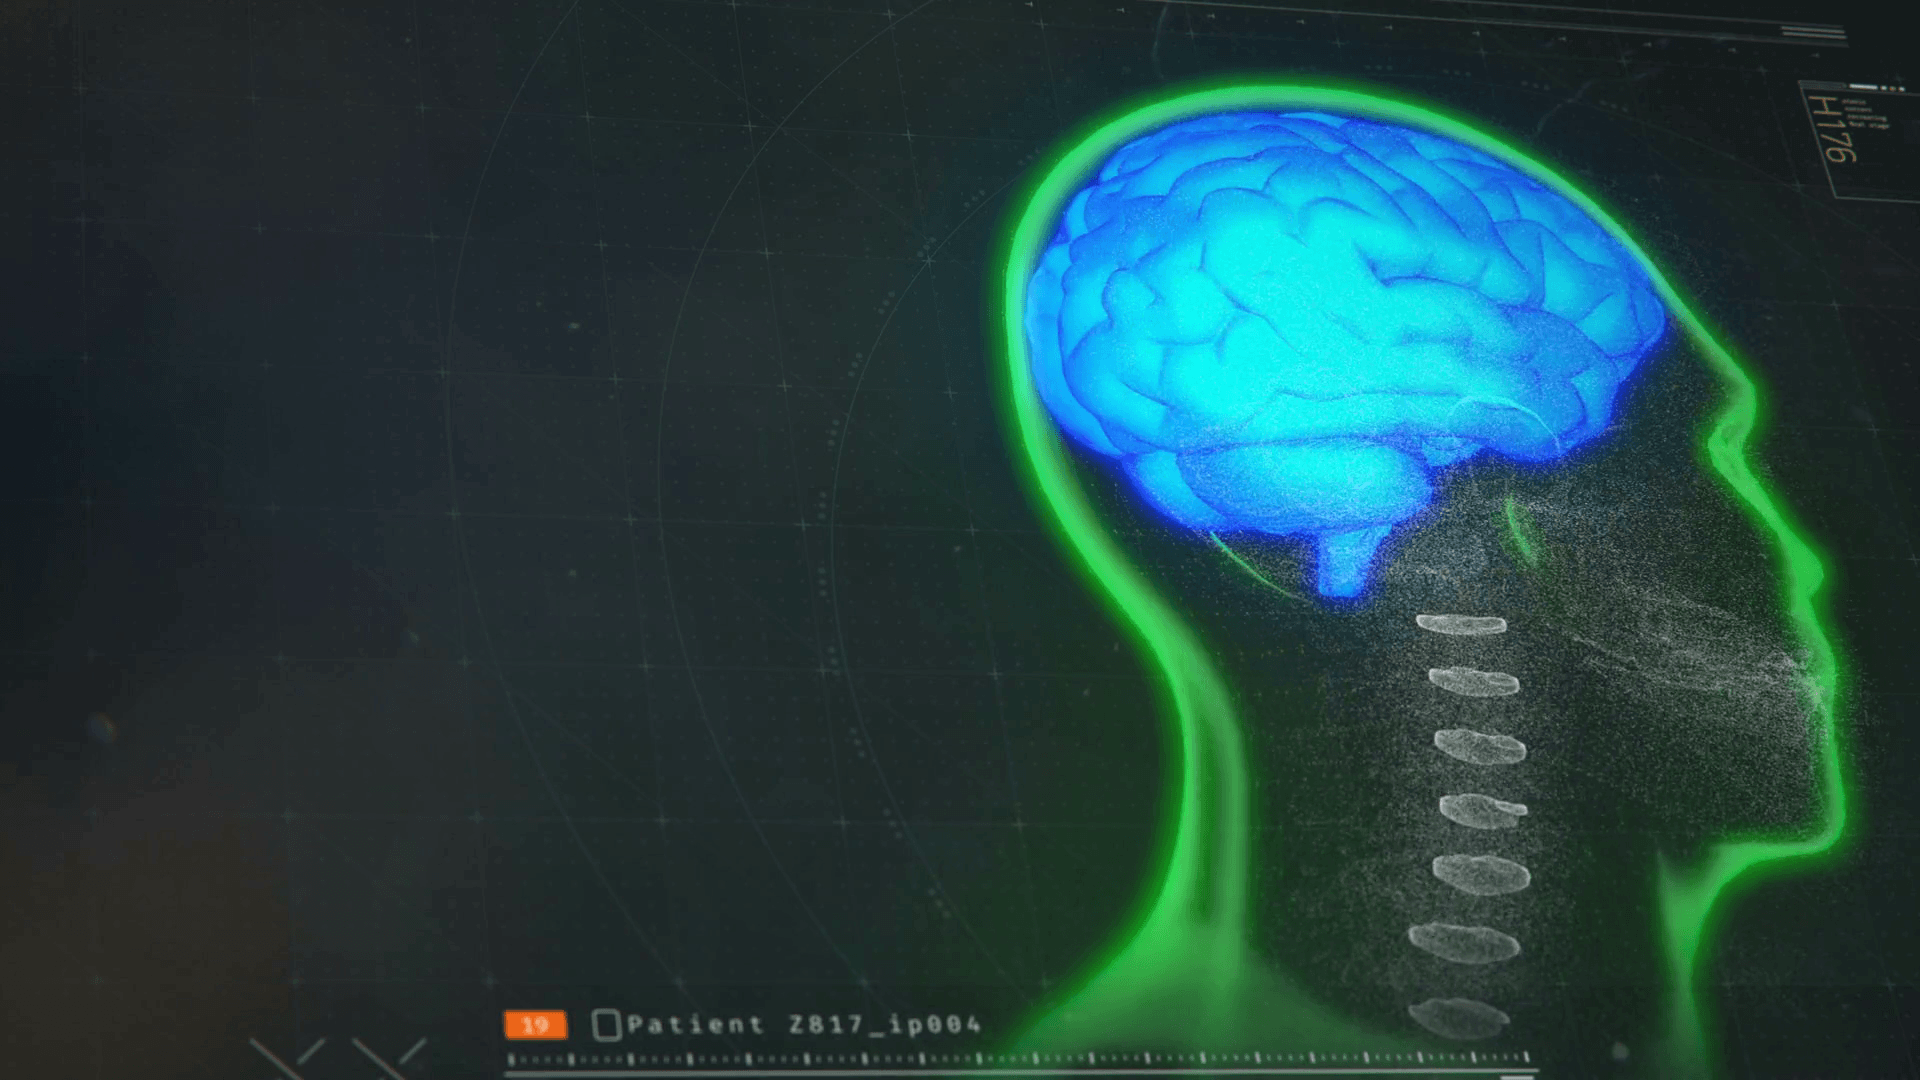 1920x1080 Medical software monitoring patient's brain activity, MRI test ...